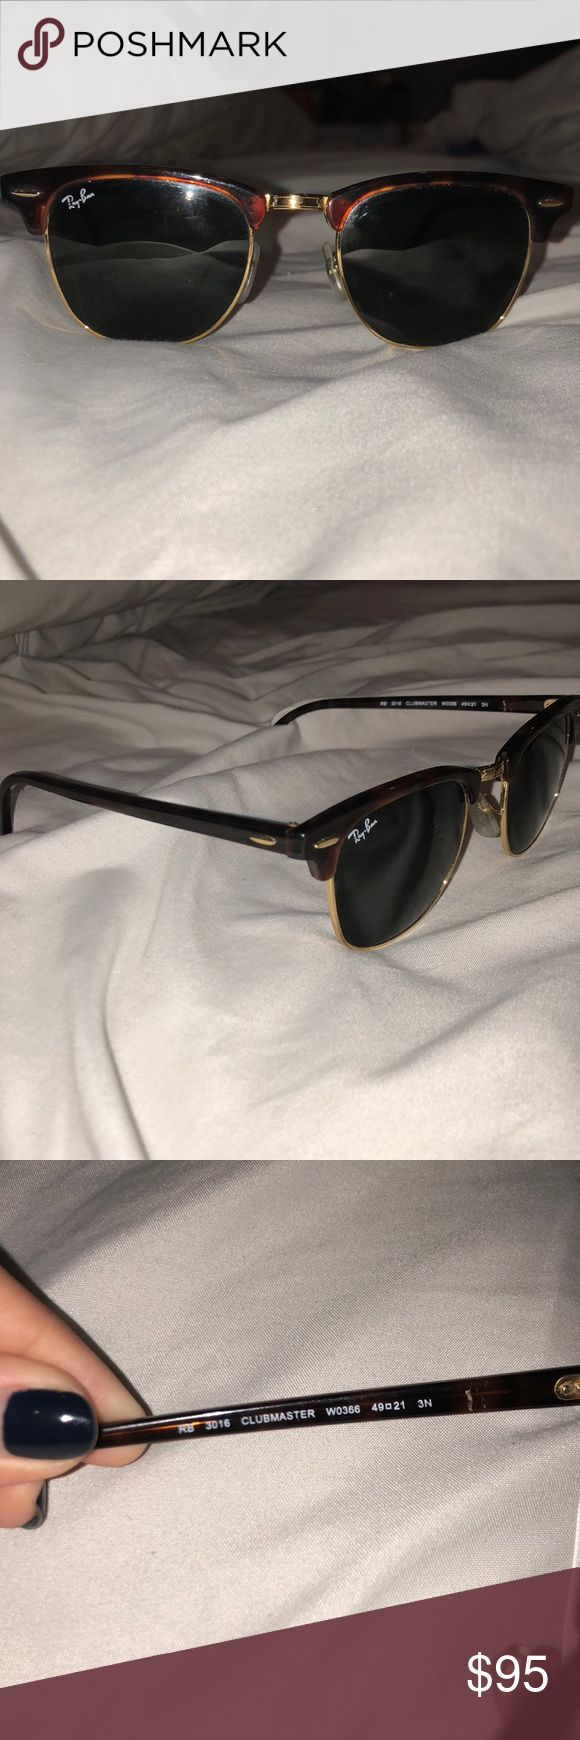 Club master Ray Bans Great condition! Tortoise shell frames! Ray-Ban Accessories Sunglasses